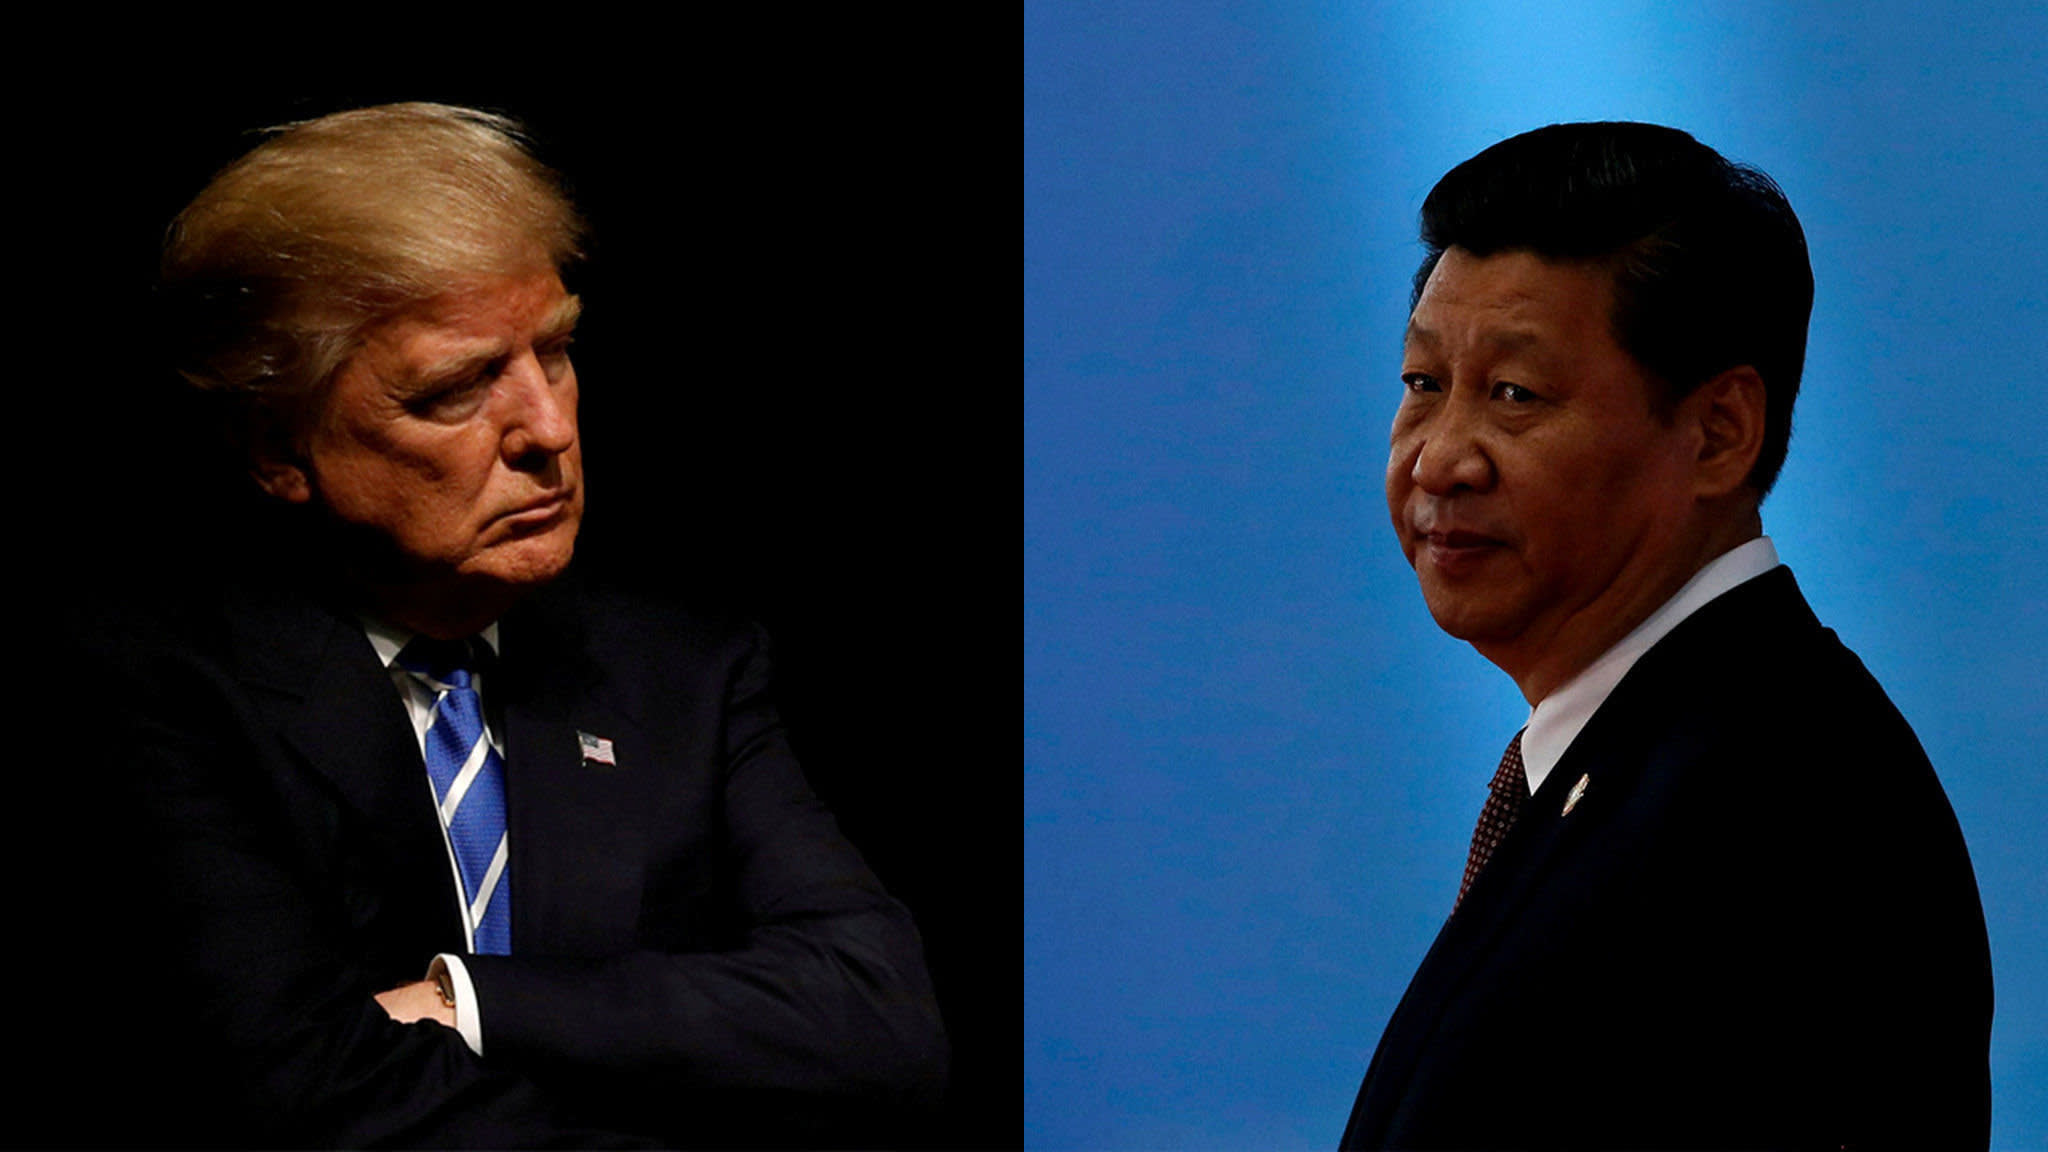 Anti-protectionist call missing from draft G20 statement